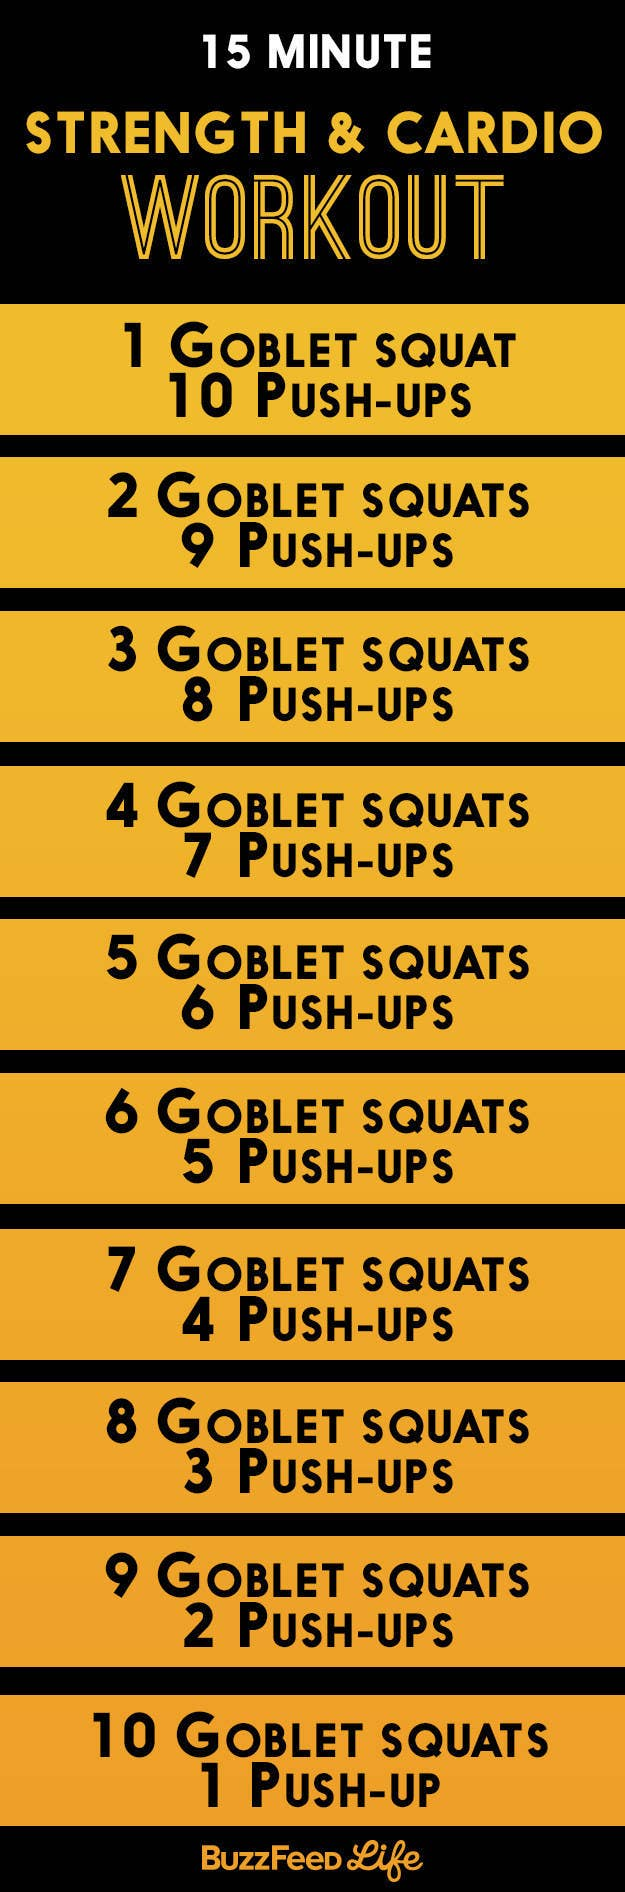 9 Incredible Ways To Get A Cardio Workout That Arent All Running Circuits Pinterest Different Types Of And Quotthis Is What I Like Call Quick N Dirty Strength